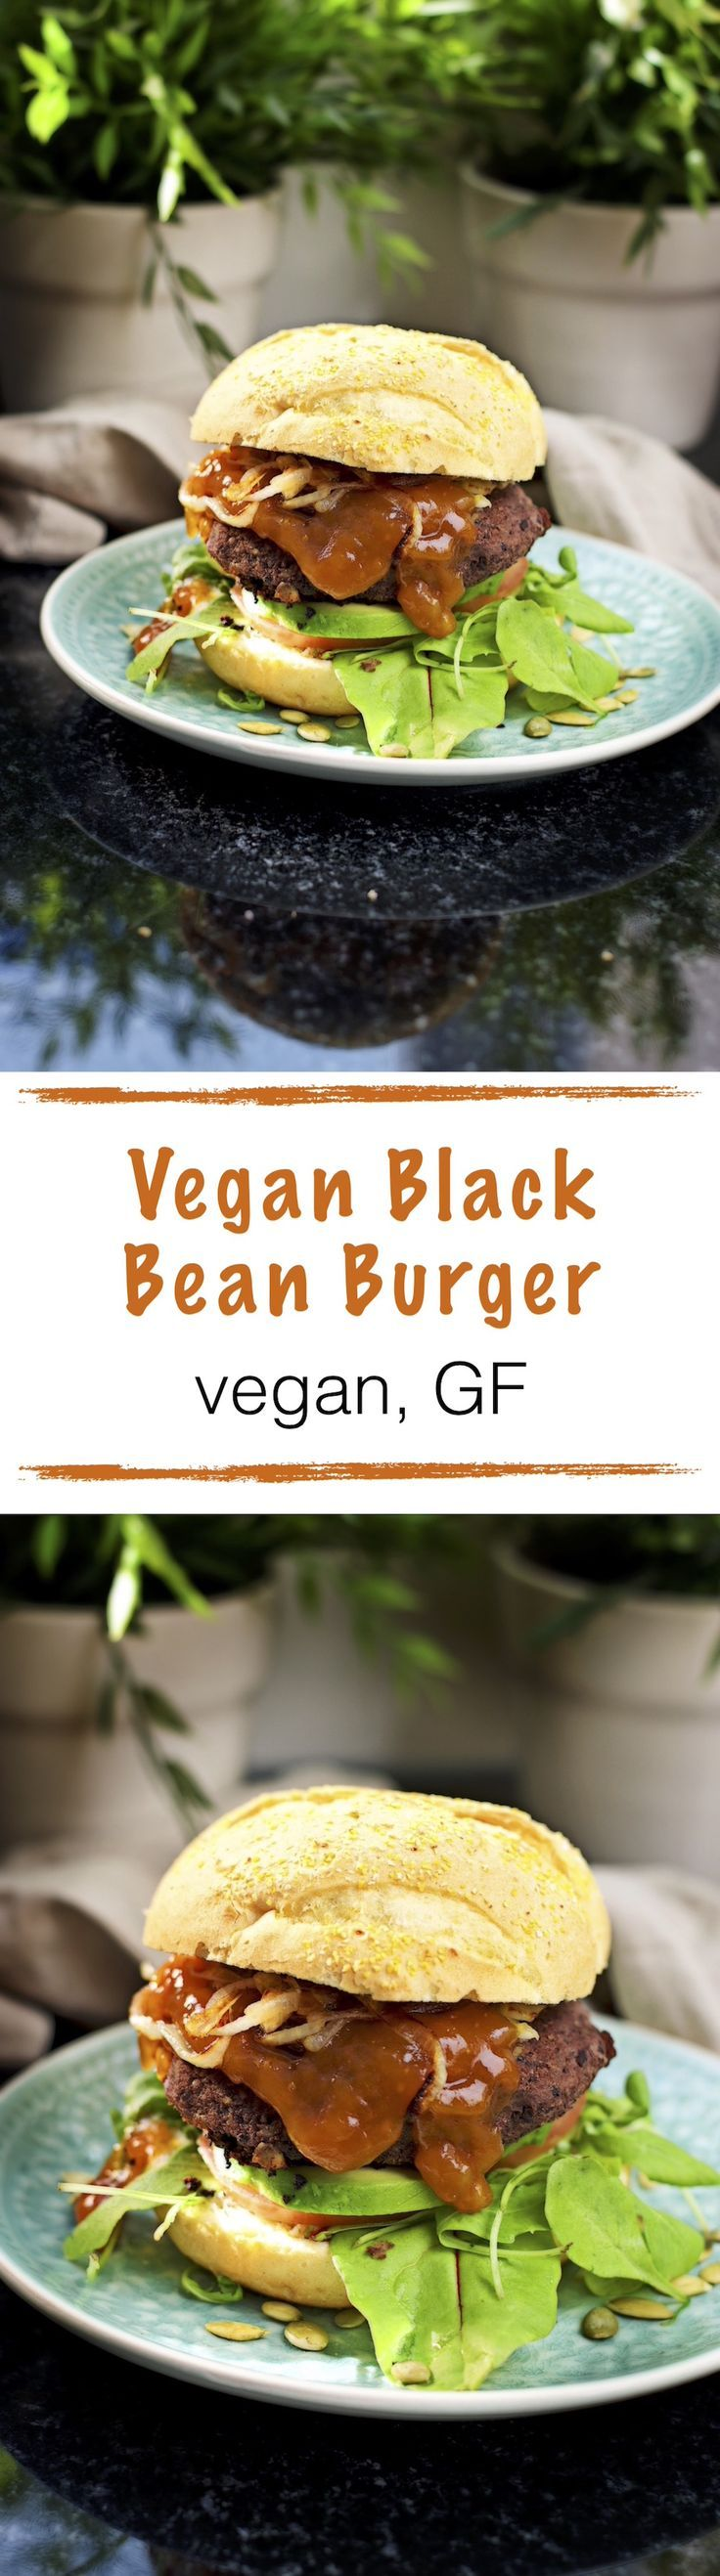 *new #recipe on the blog* Vegan Black Bean Burger Time for another #burger night. Here is the newest addition to my #vegan burger list: A Vegan Black Bean Burger. A freshly made patty with only 3 ingredients - with an optional indulgence: mango chutney. Of course, it's #glutenfree. And the first one from the new kitchen!